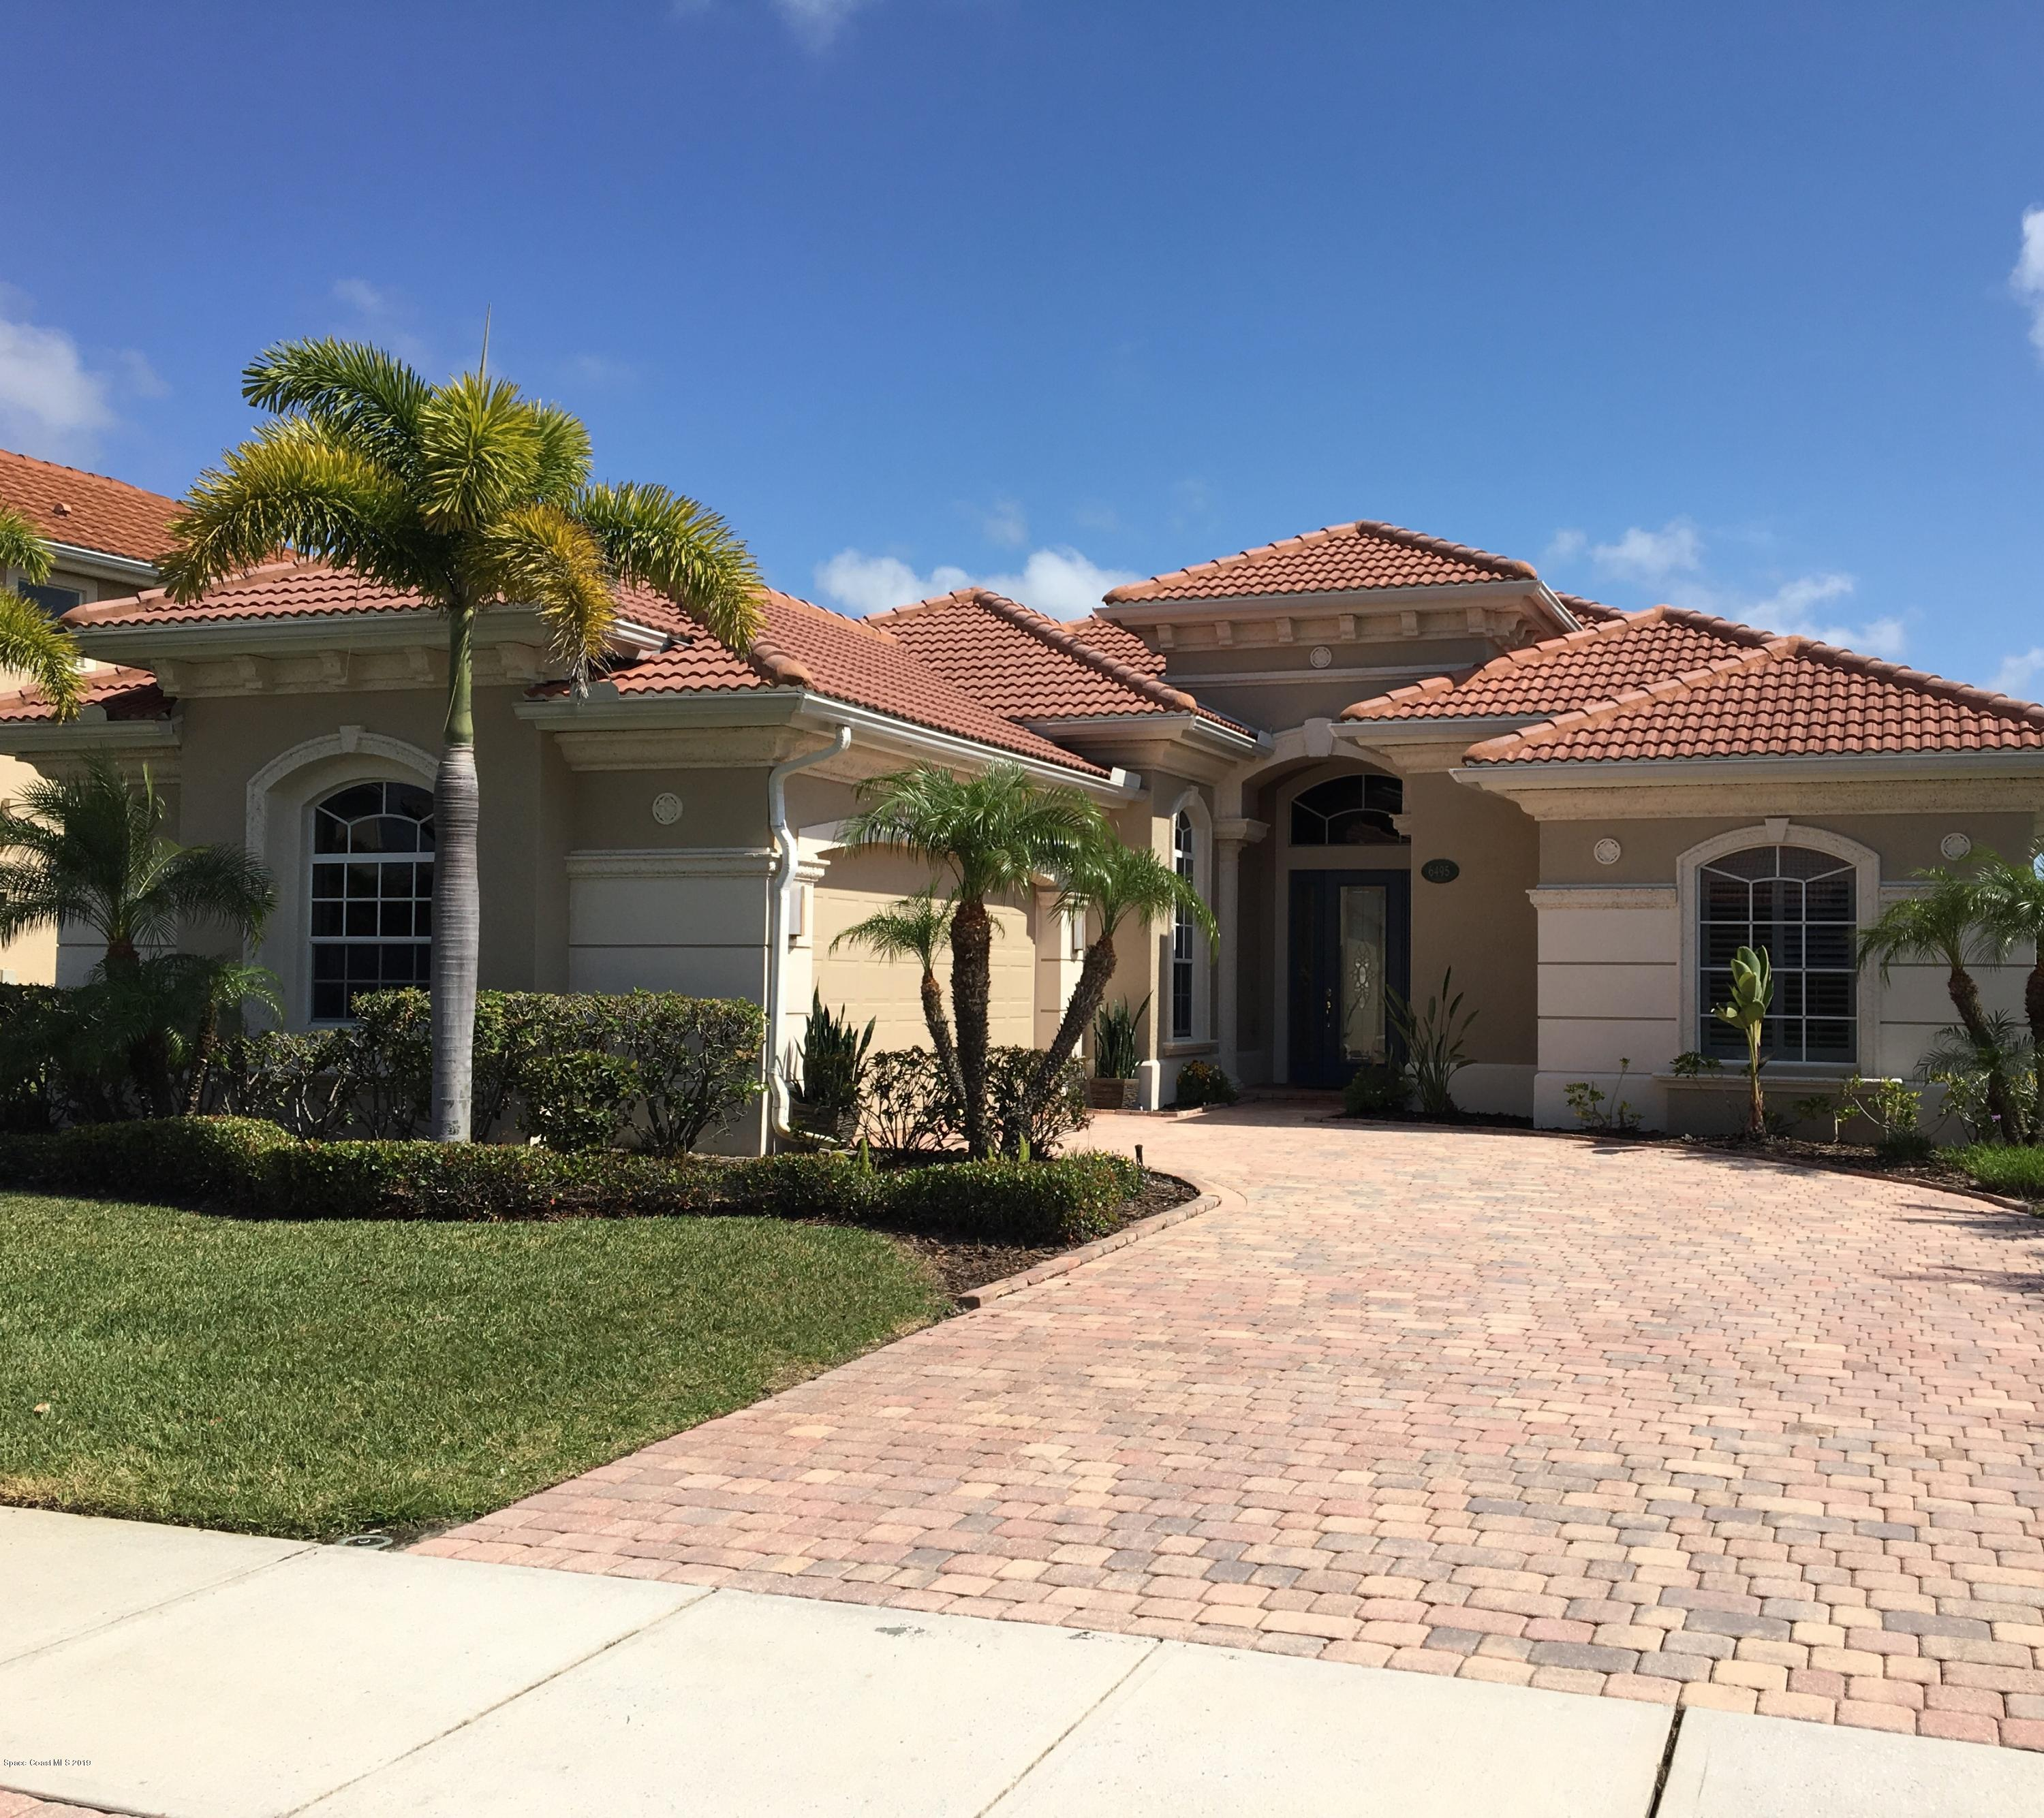 Single Family Home for Sale at 6495 Arroyo 6495 Arroyo Melbourne, Florida 32940 United States